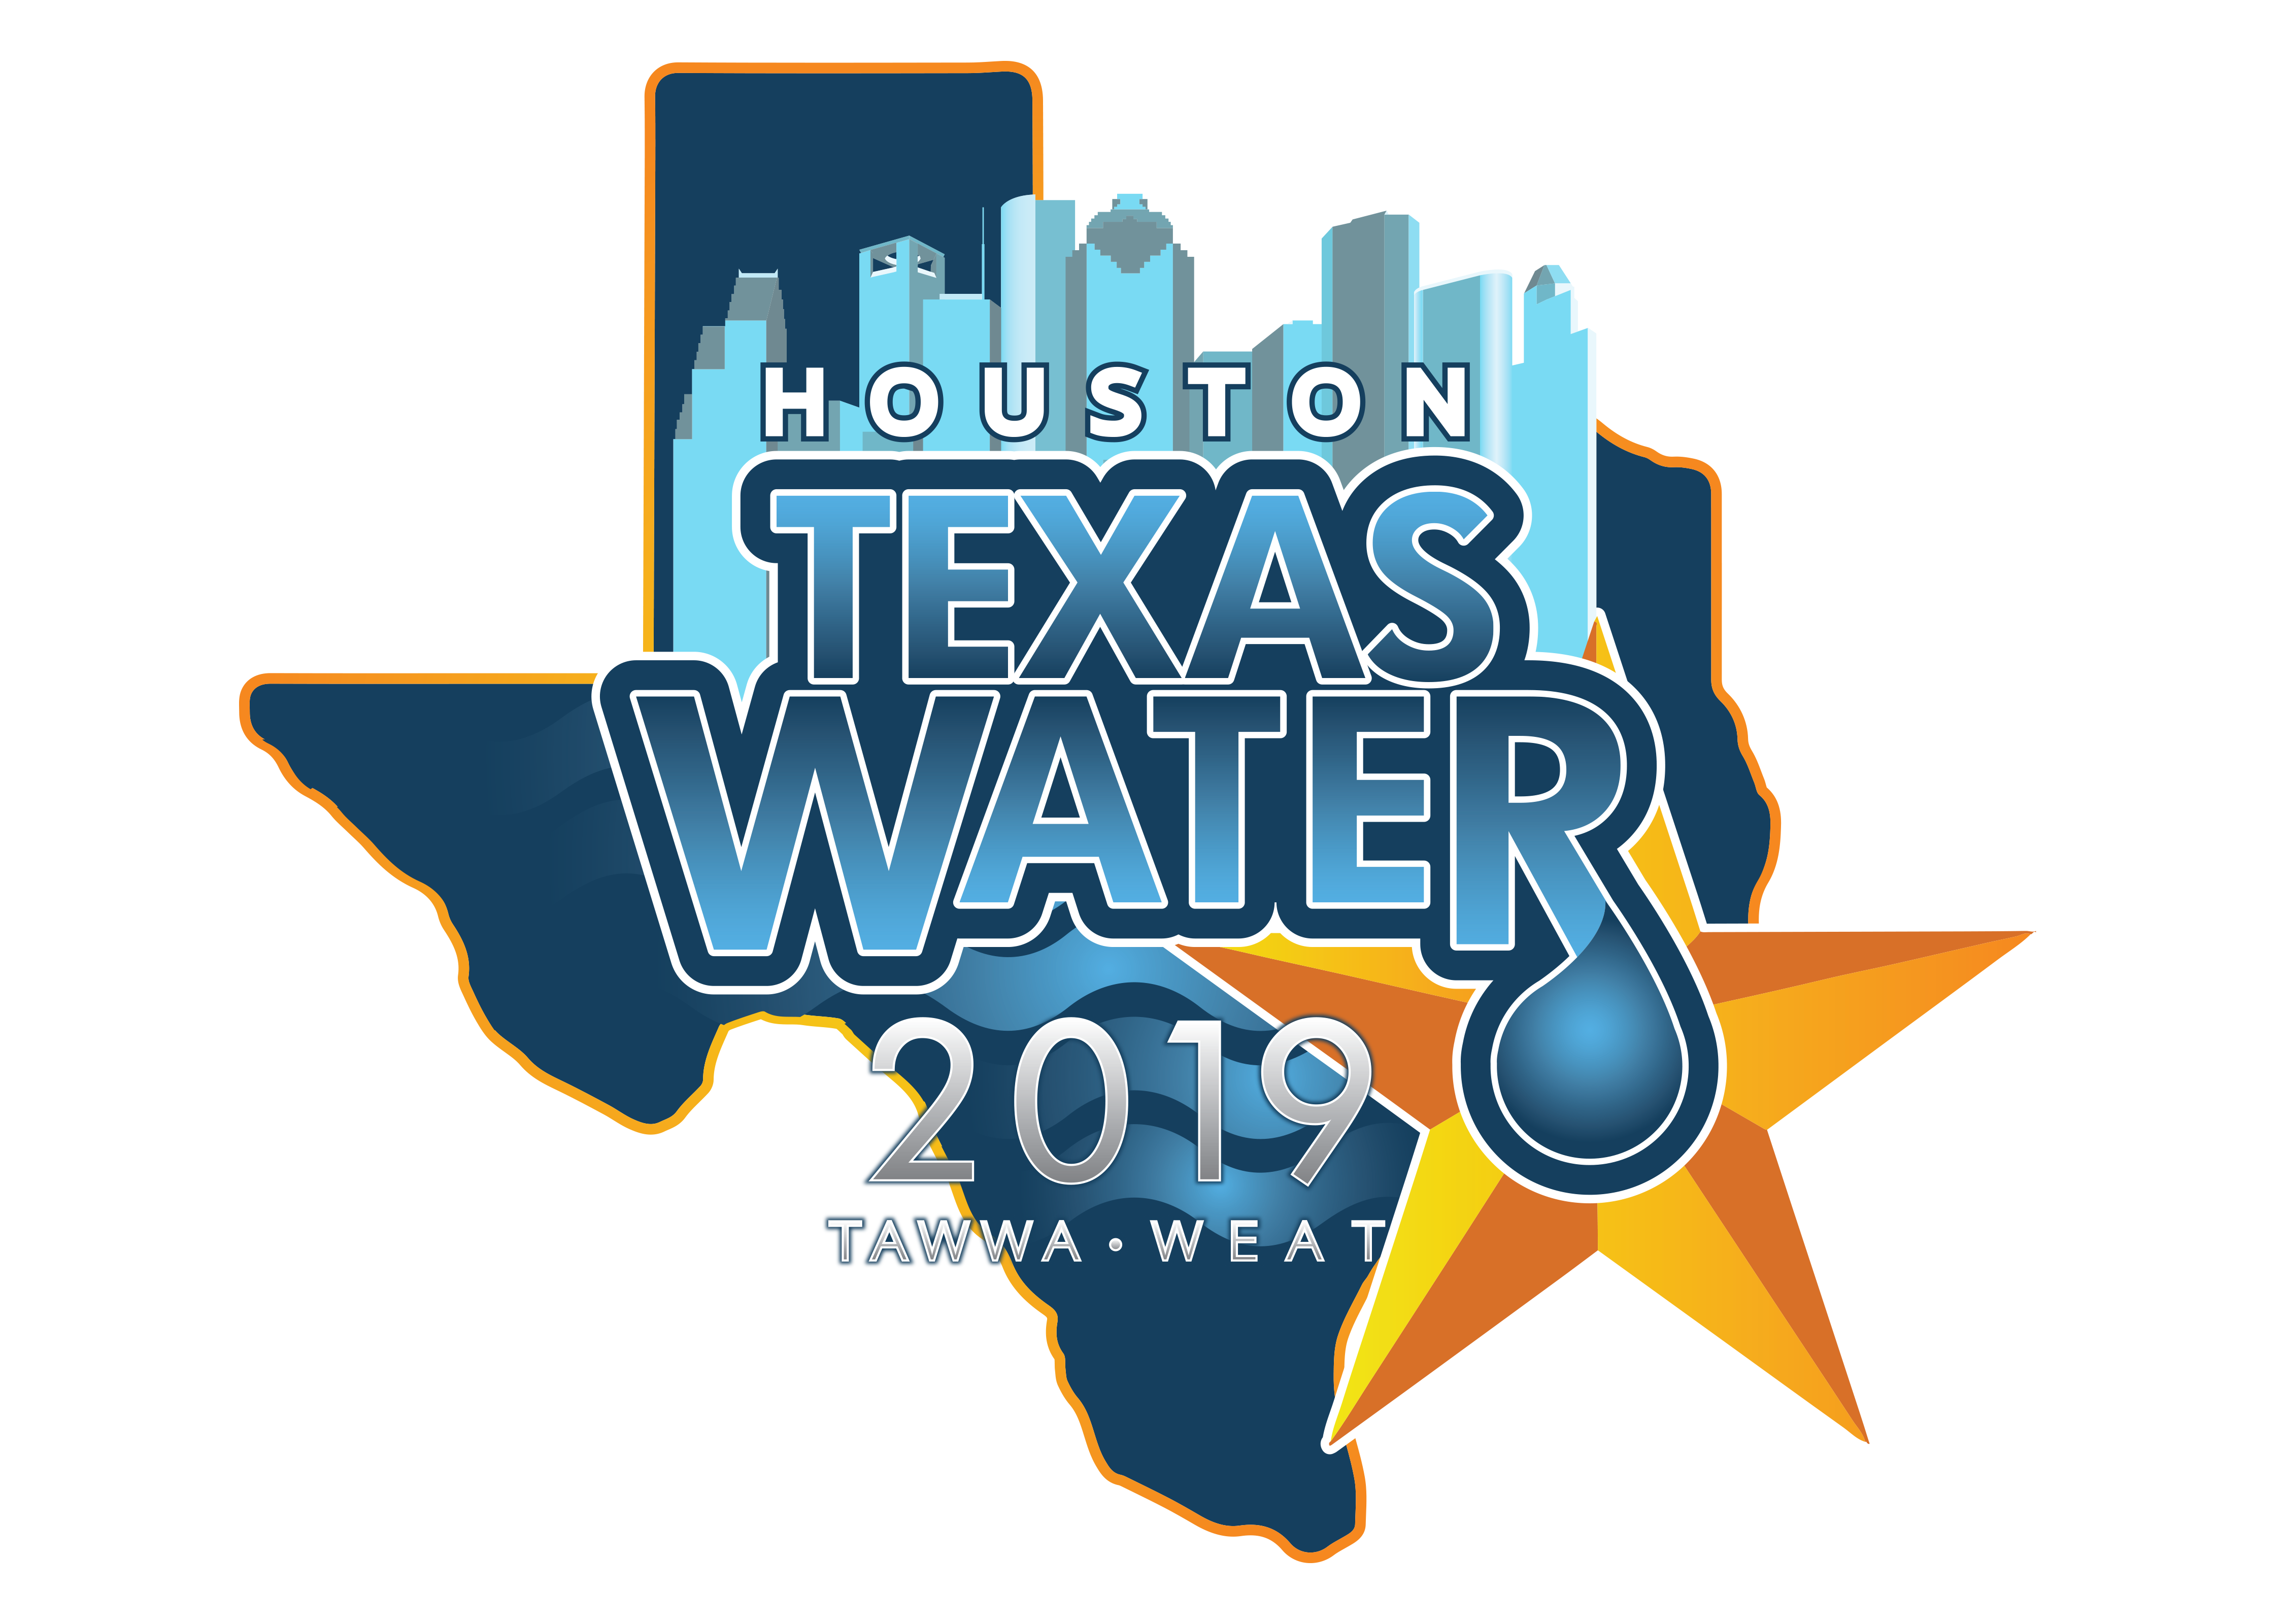 Texas-Water-2019_Full-Color.png#asset:9800